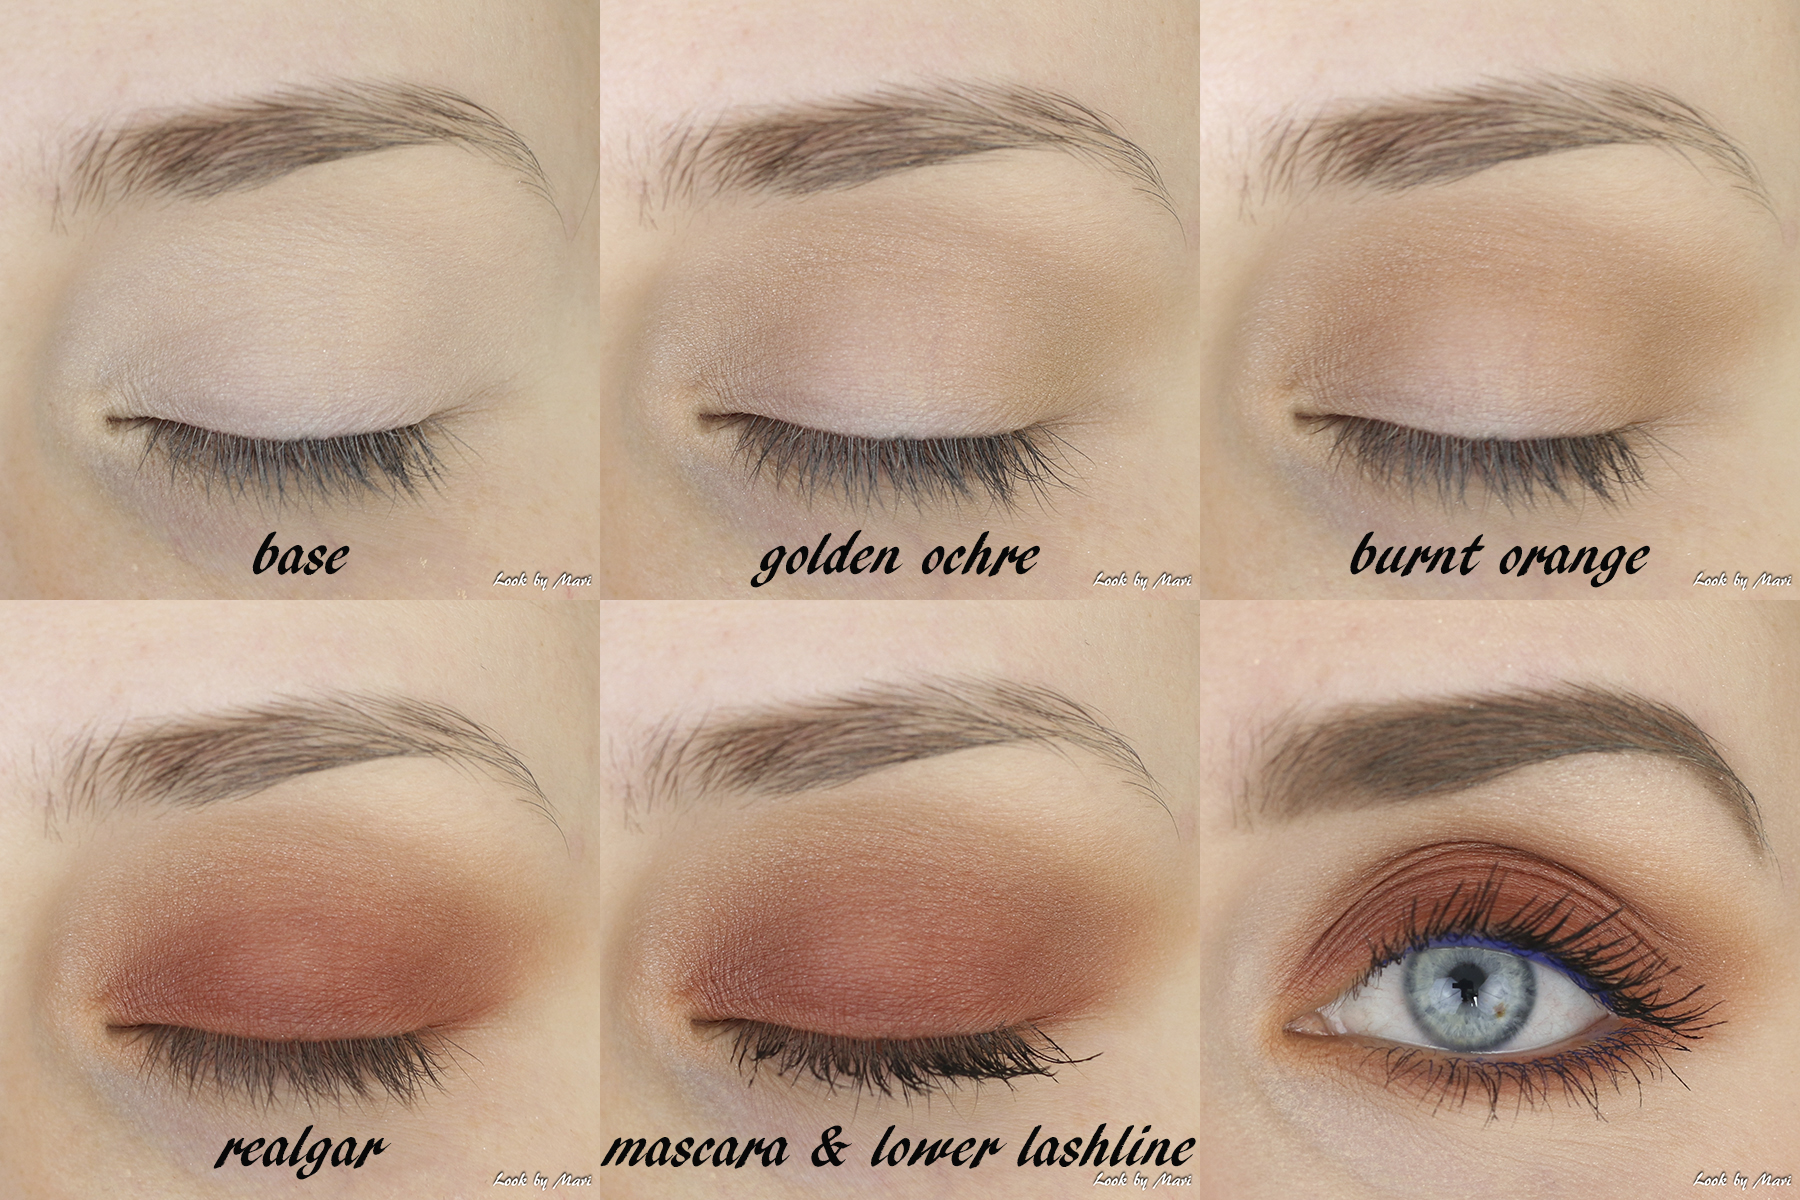 4 anastasia beverly hills modern renessaince palette tutorial inspo inspiration eye makeup